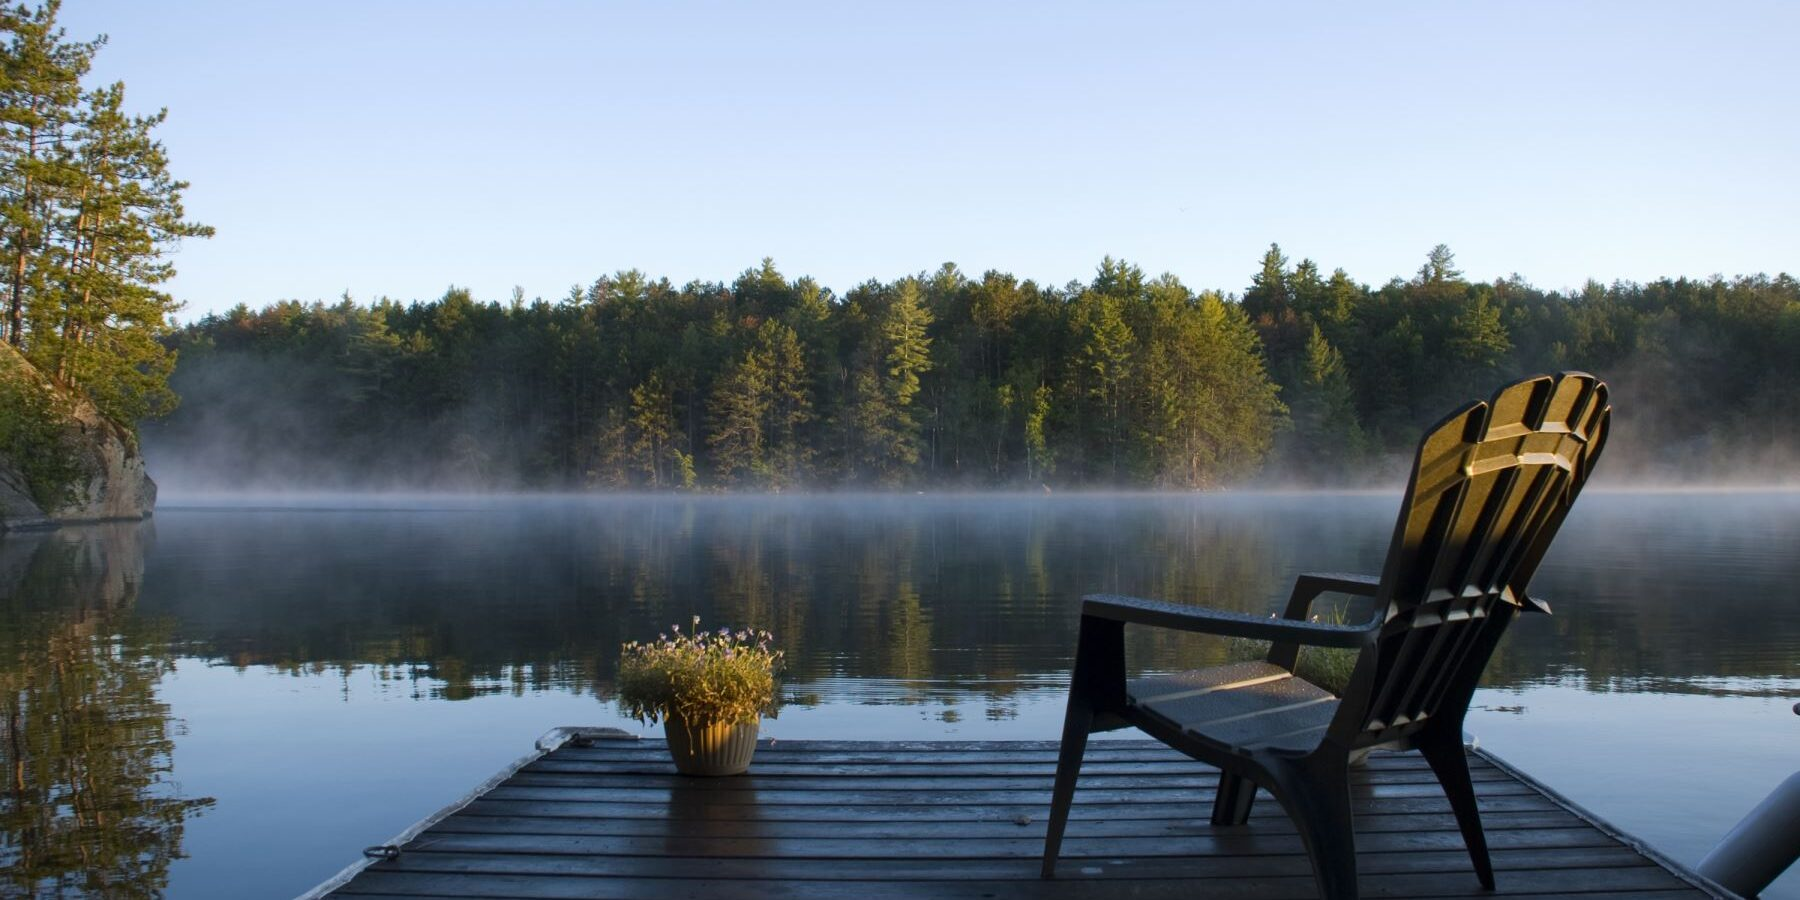 Morning-Mist-On-The-Lake